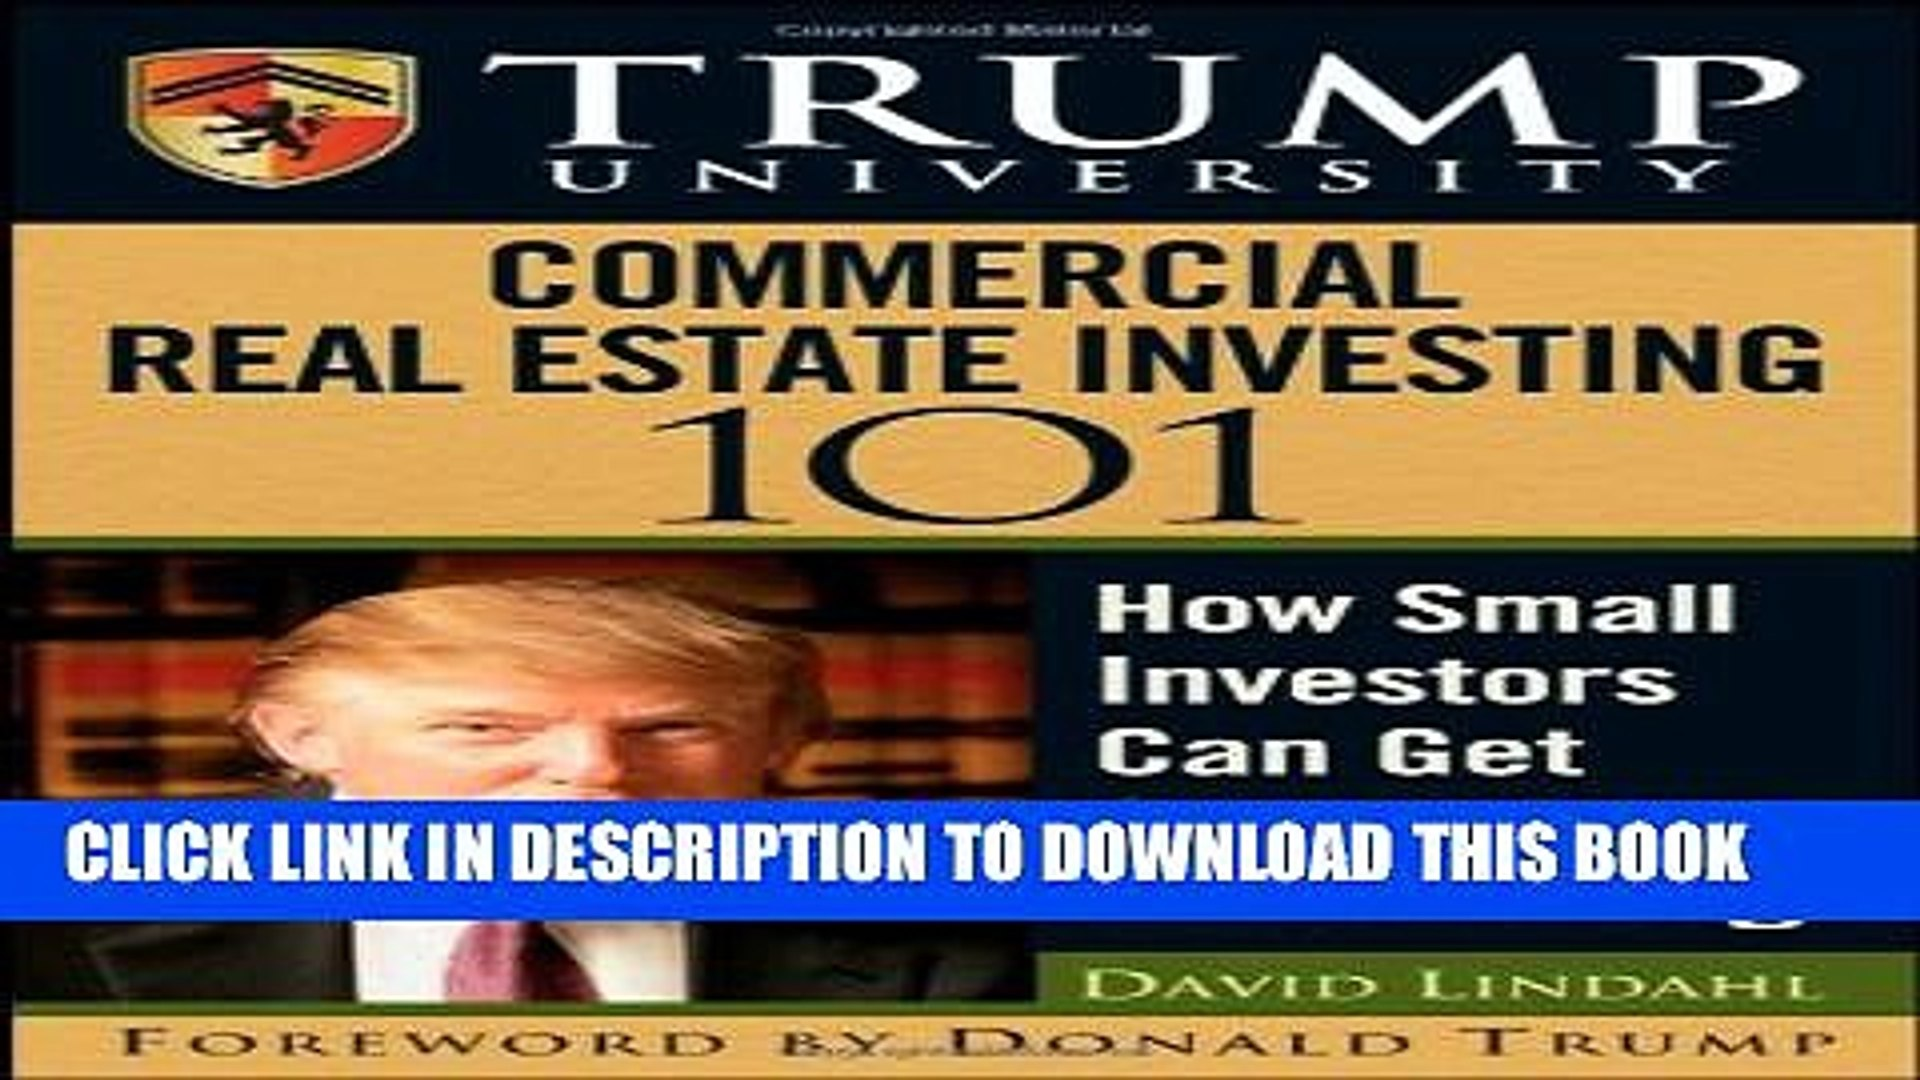 [PDF] Trump University Commercial Real Estate 101: How Small Investors Can Get Started and Make It